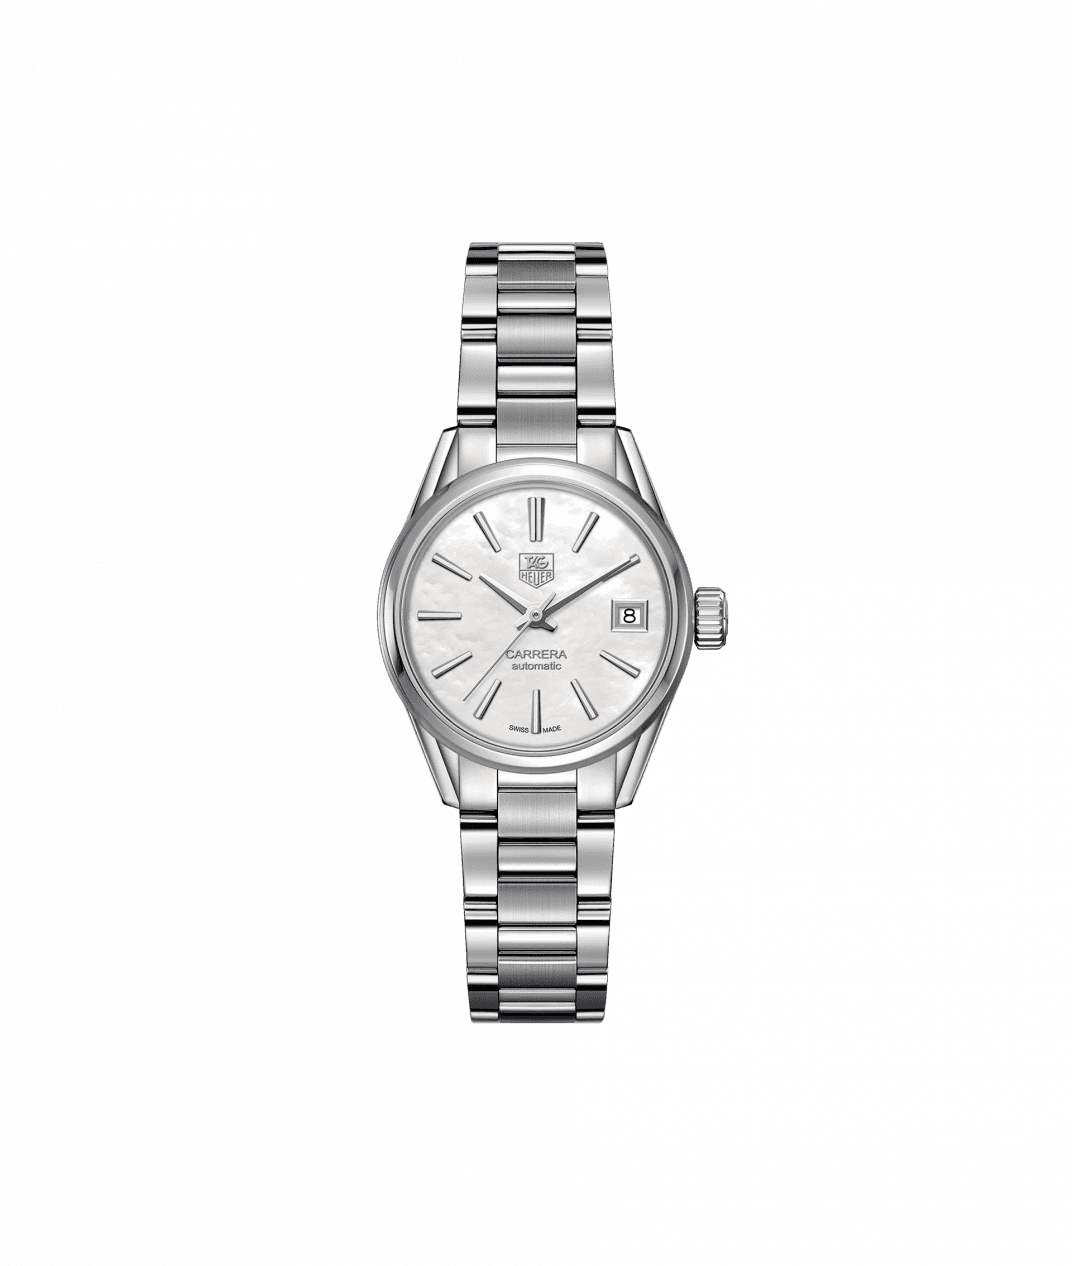 Carrera Automatic (28mm)